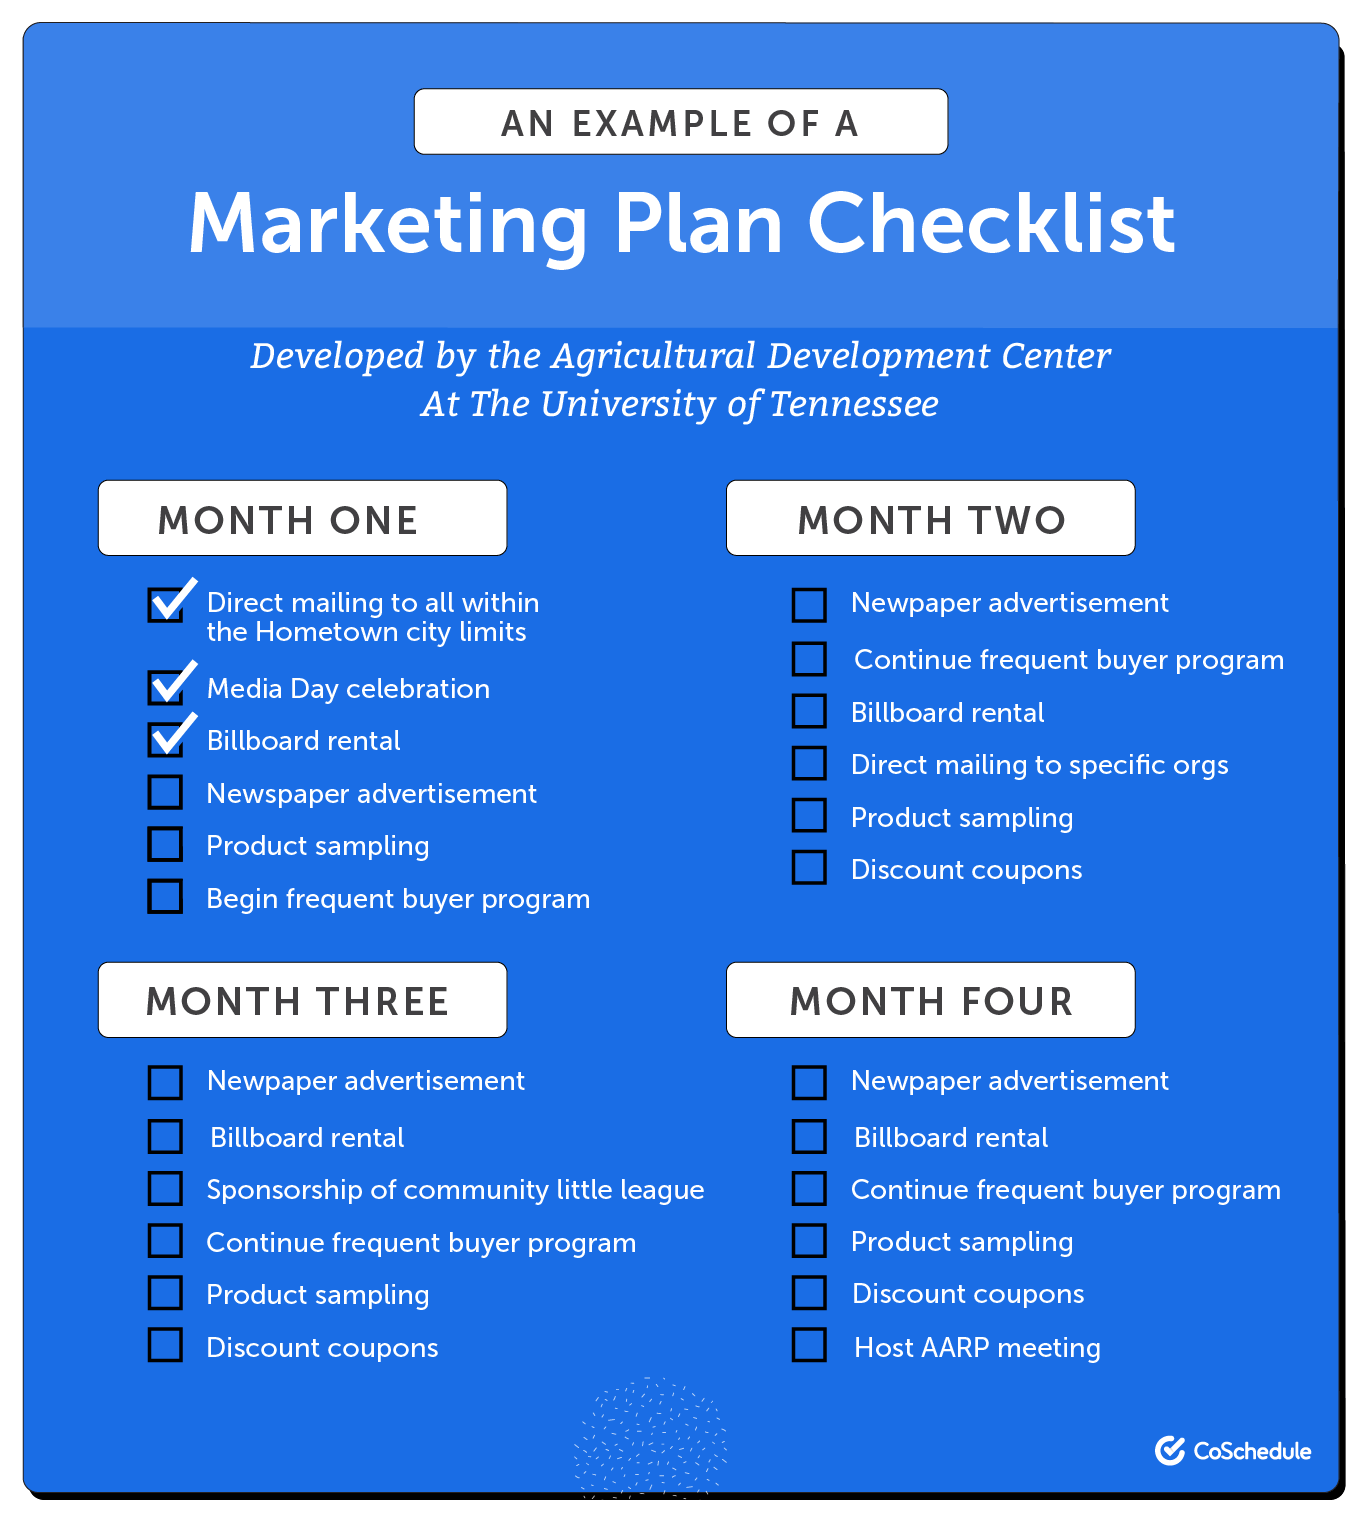 An example of a marketing plan checklist.